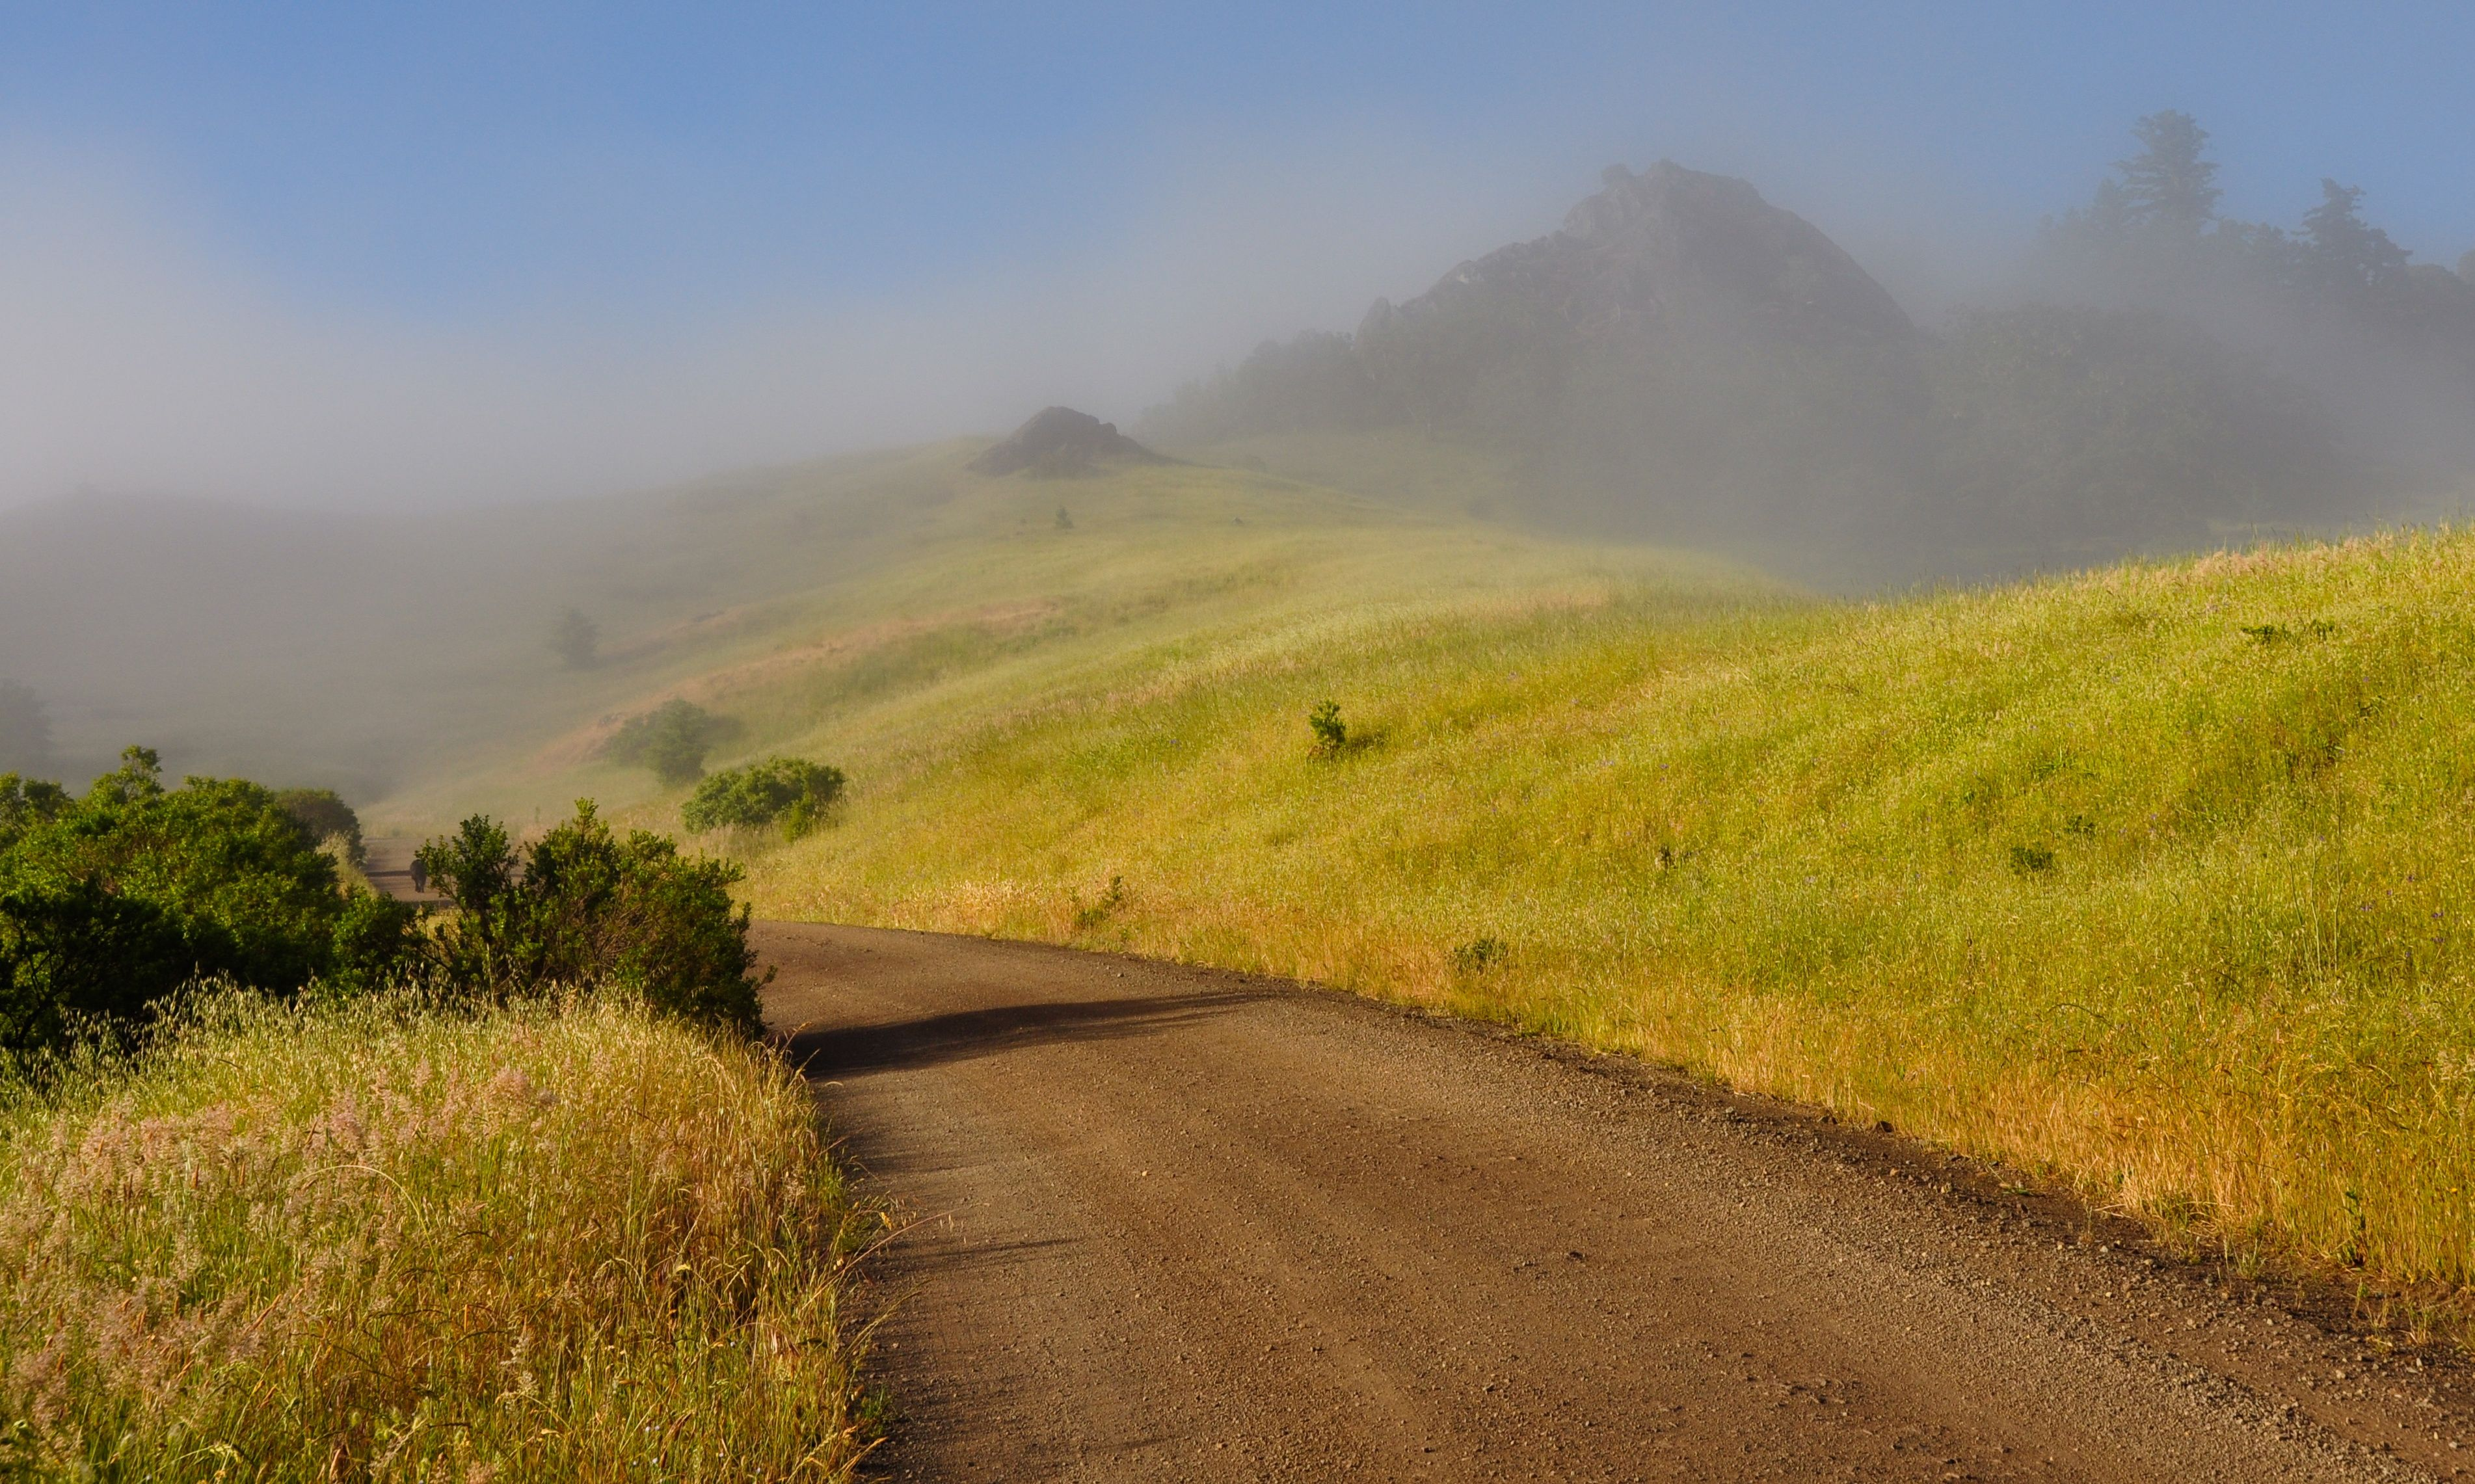 Morning hill at the road